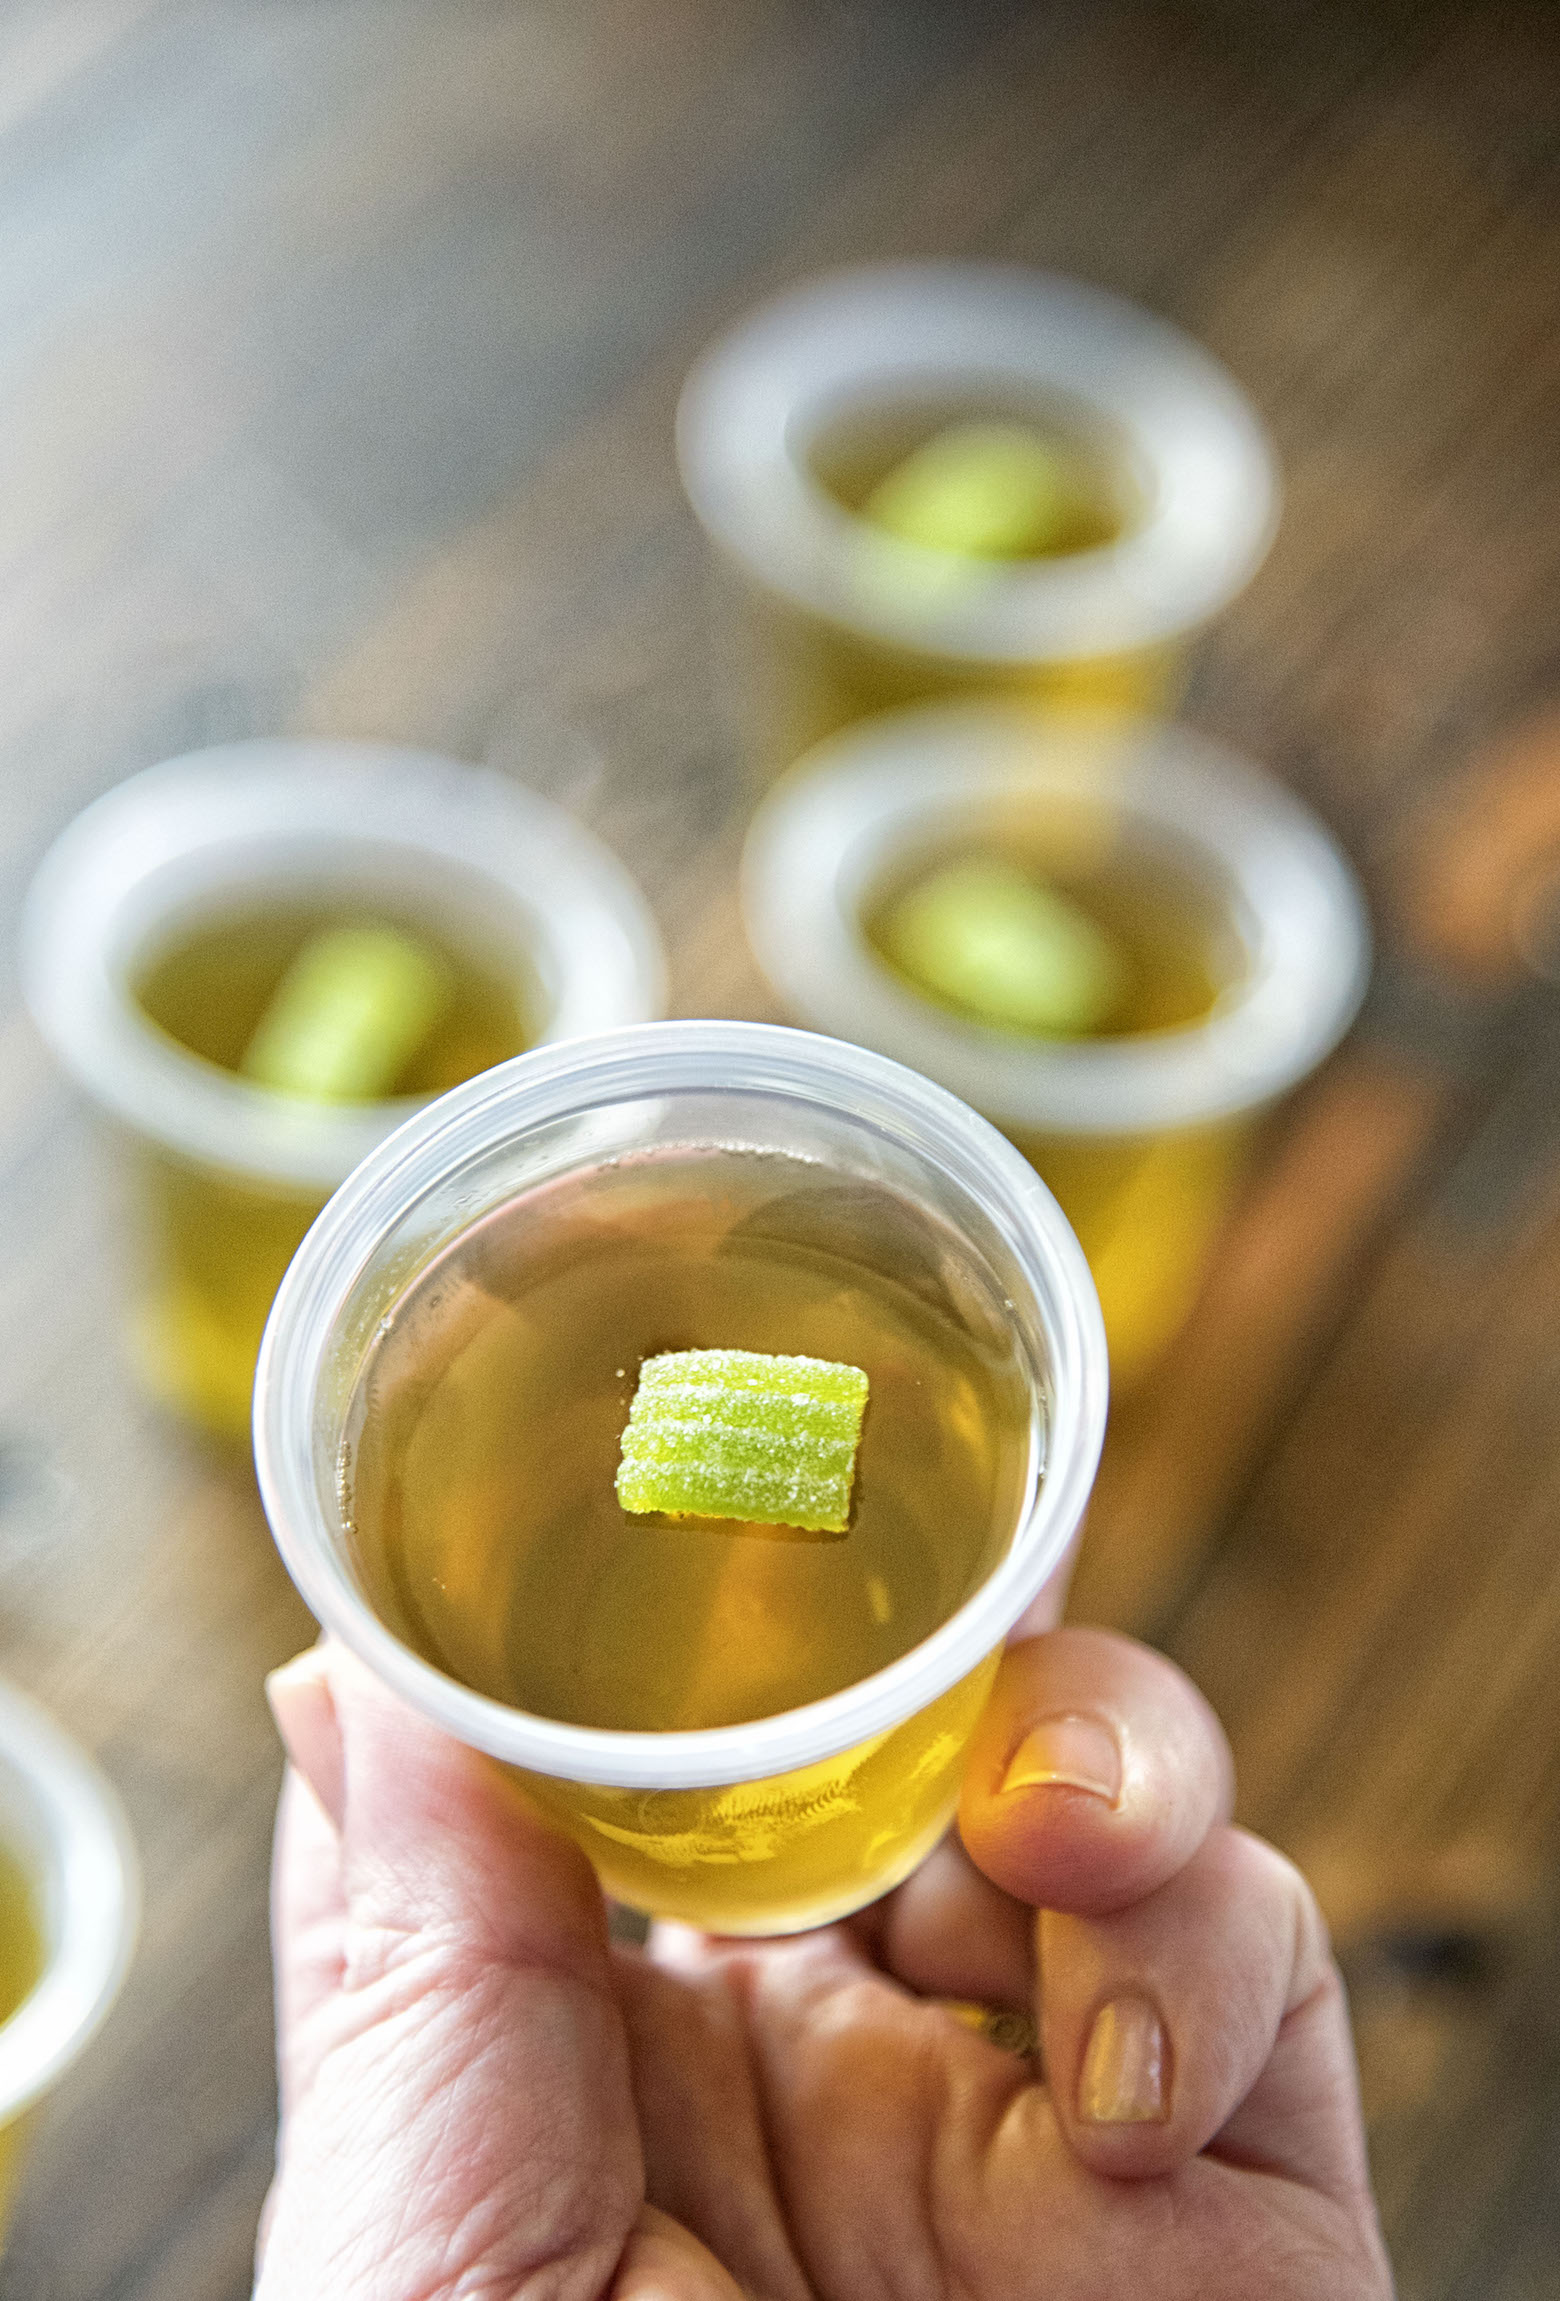 Fireball Apple Cider Jell-O Shots